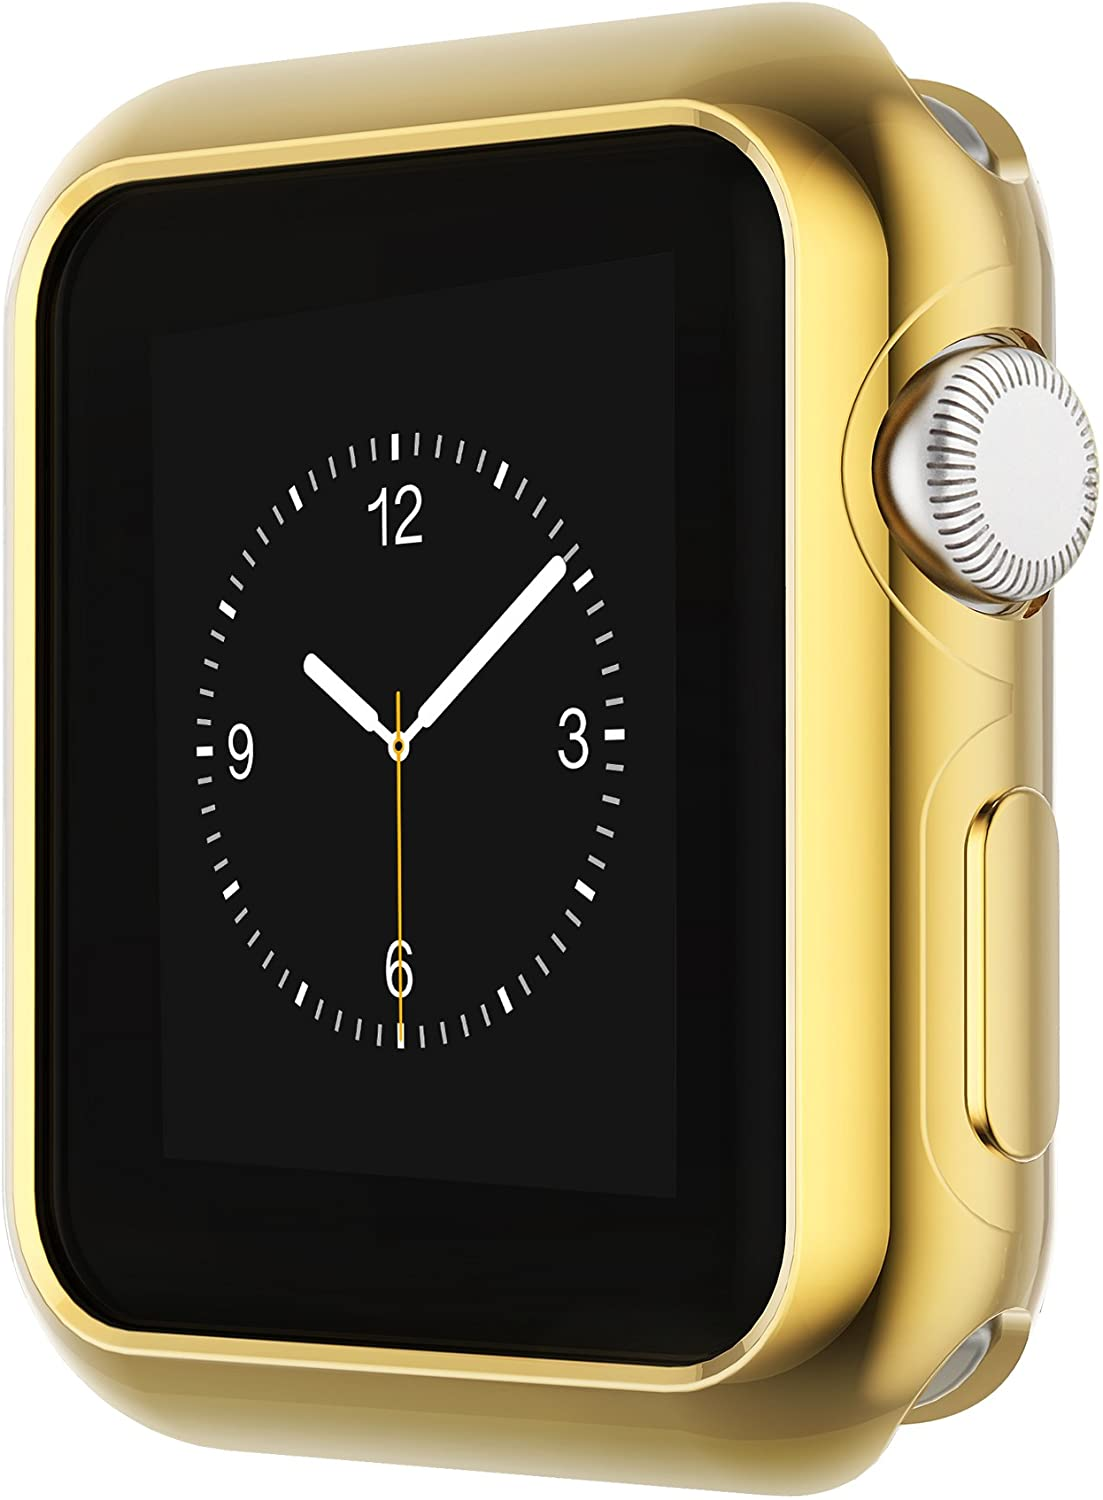 Coobes Compatible with Apple Watch Case Series 6 5 4 SE 44mm 40mm, Ultra-Thin TPU Plating Bumper Shiny Lightweight Shockproof Protector Cover Slim Shell Frame Compatible iWatch (Gold, 44mm)¡